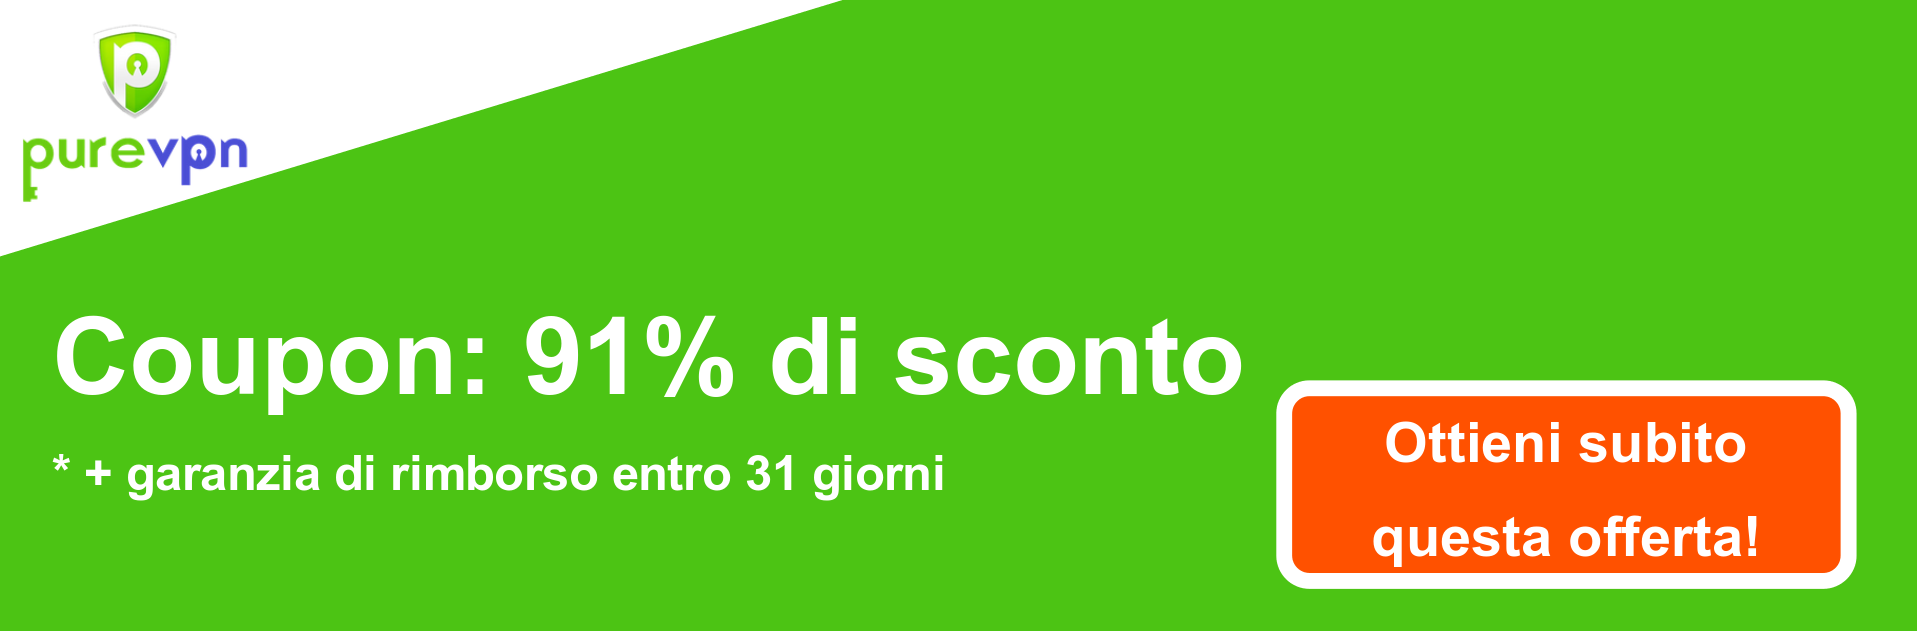 Banner coupon PureVPN - 91% di sconto